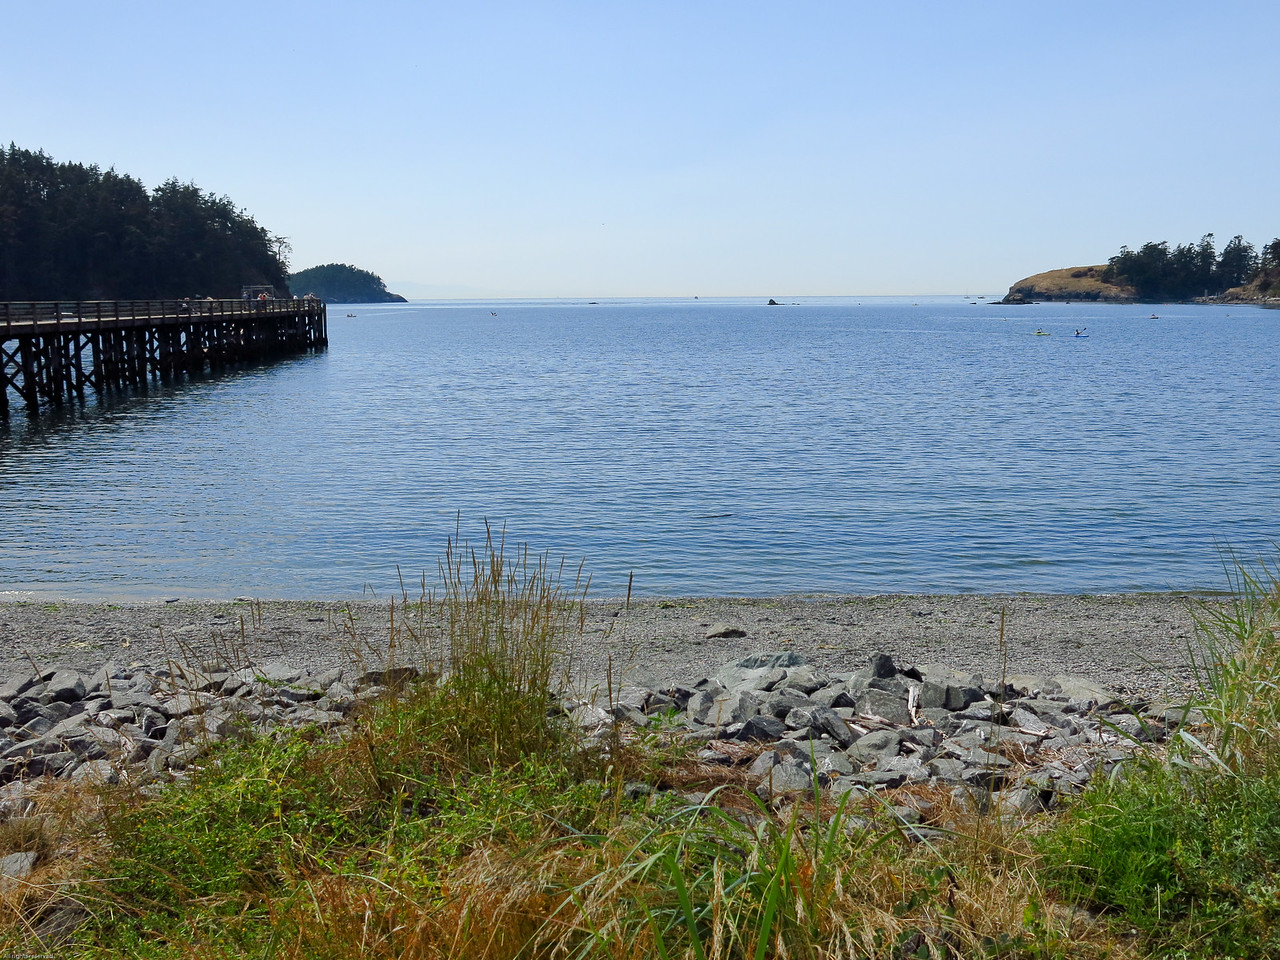 Bowman Bay with pier on the right